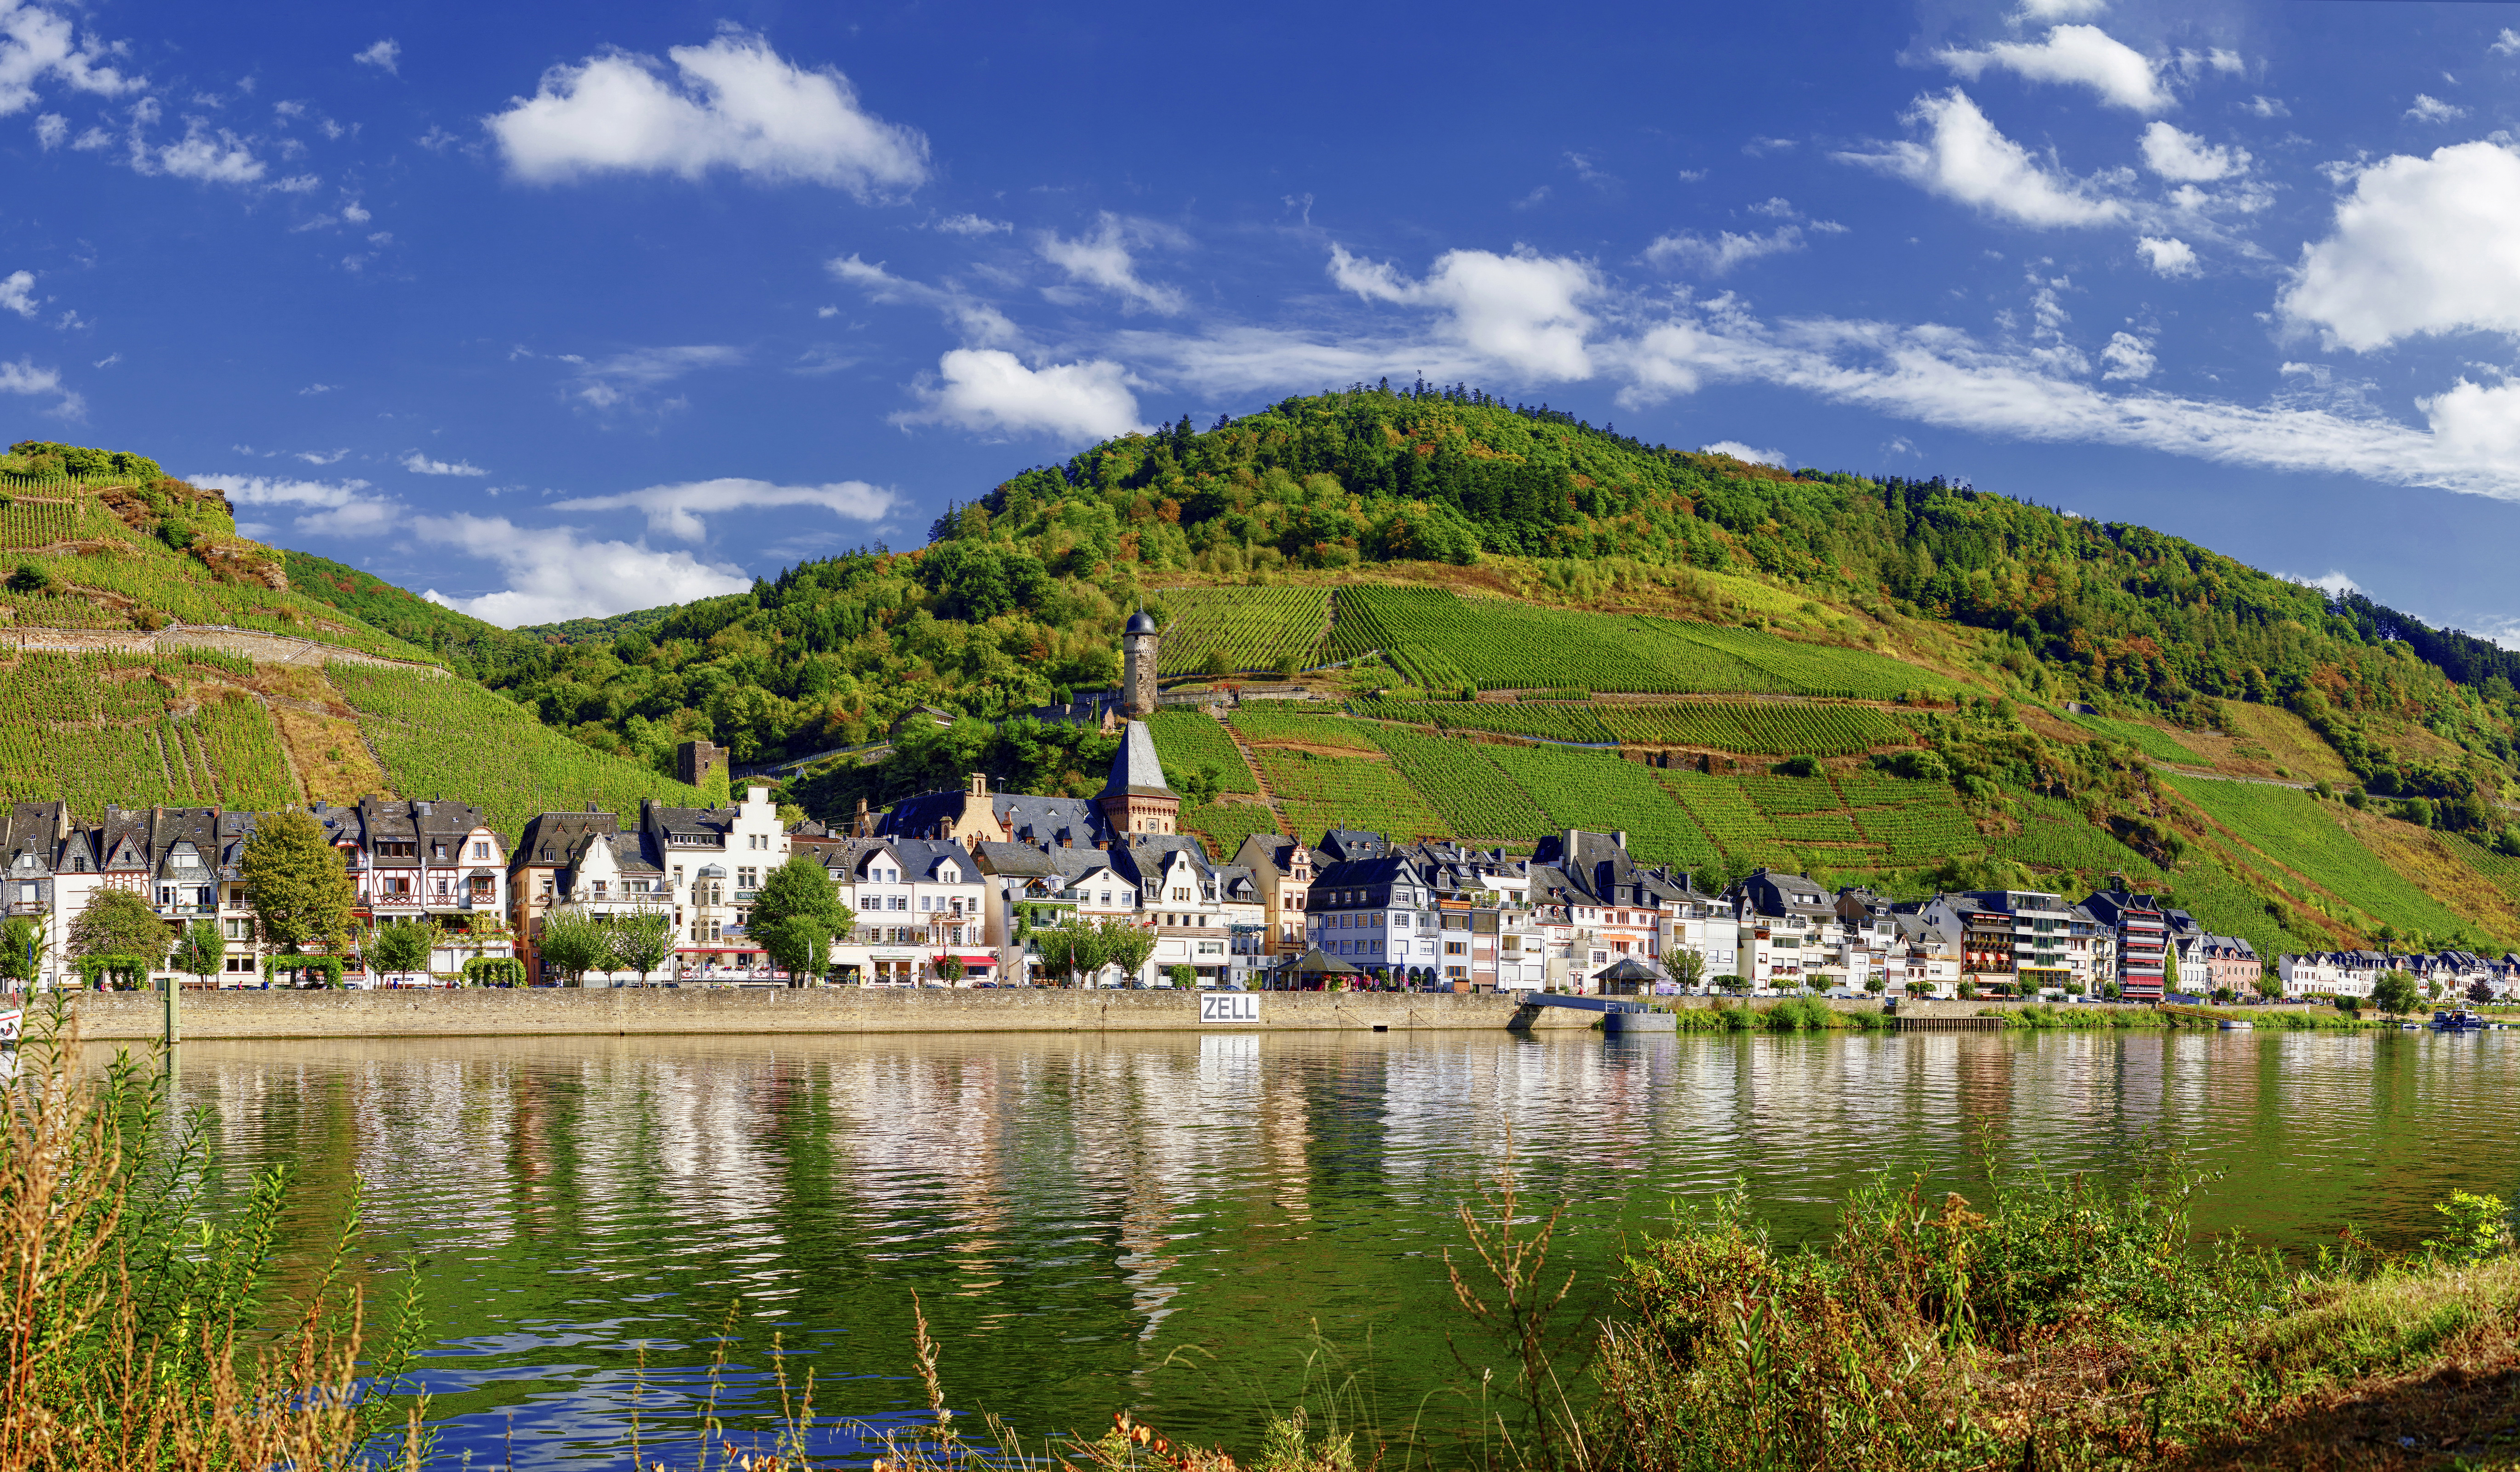 Wallpaper Germany Zell (Mosel) Hill Fields Rivers Cities Building river Houses